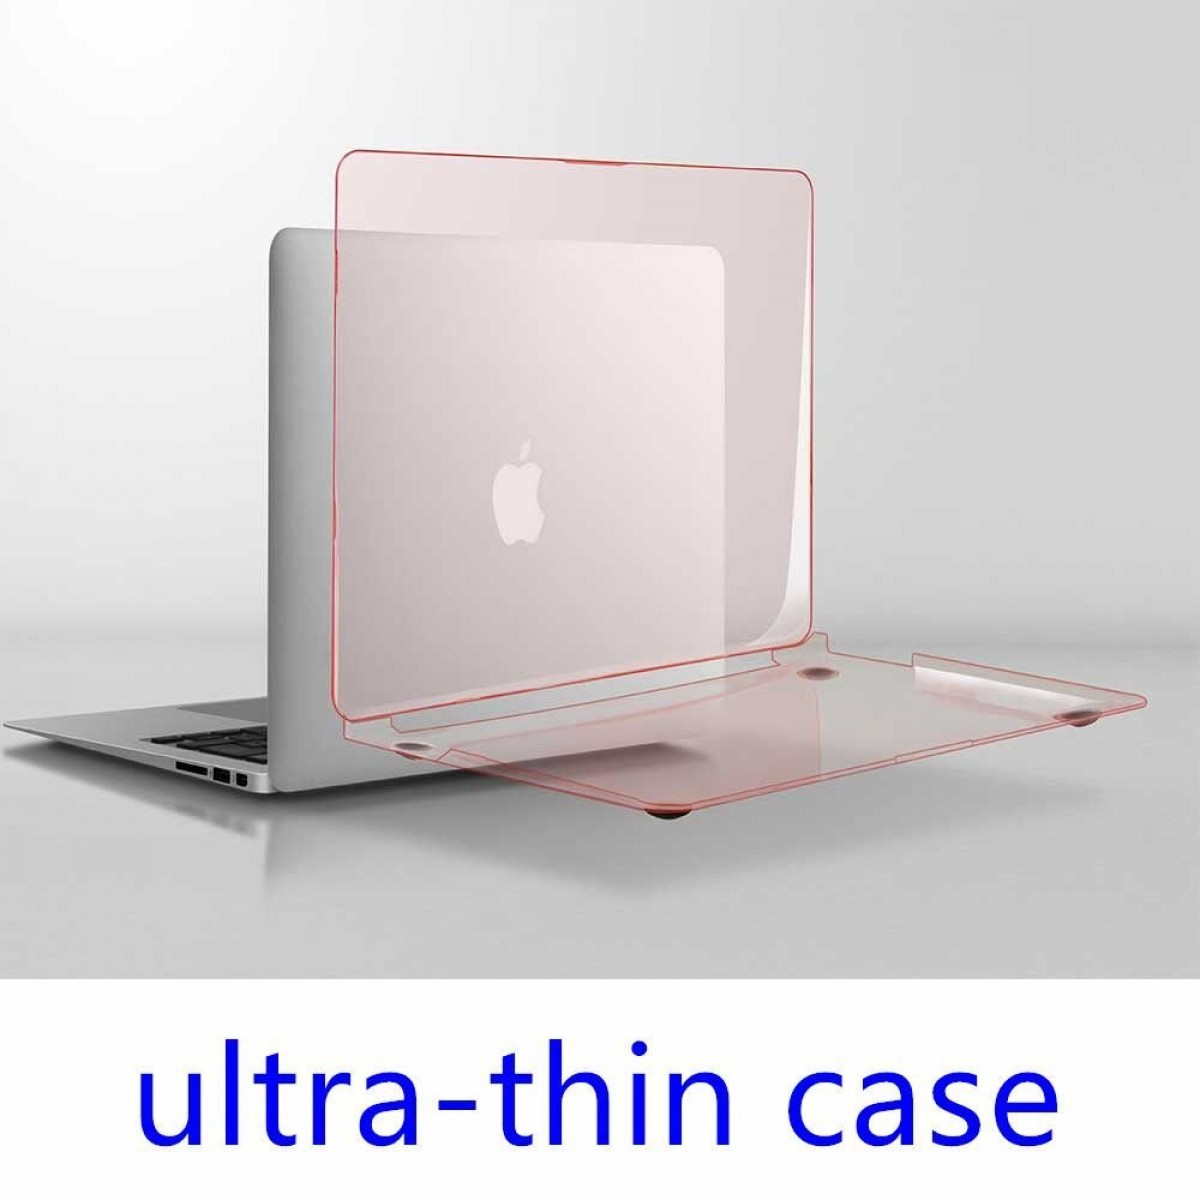 hot sale online 0be04 89670 Twinscase Macbook Pro 13 Inch Cases A1706/A1708 Glossy Transparent  Covers,Ultra Thin Anti-scratch Dustproof Rubberized Macbook Case Shell  Cover for ...